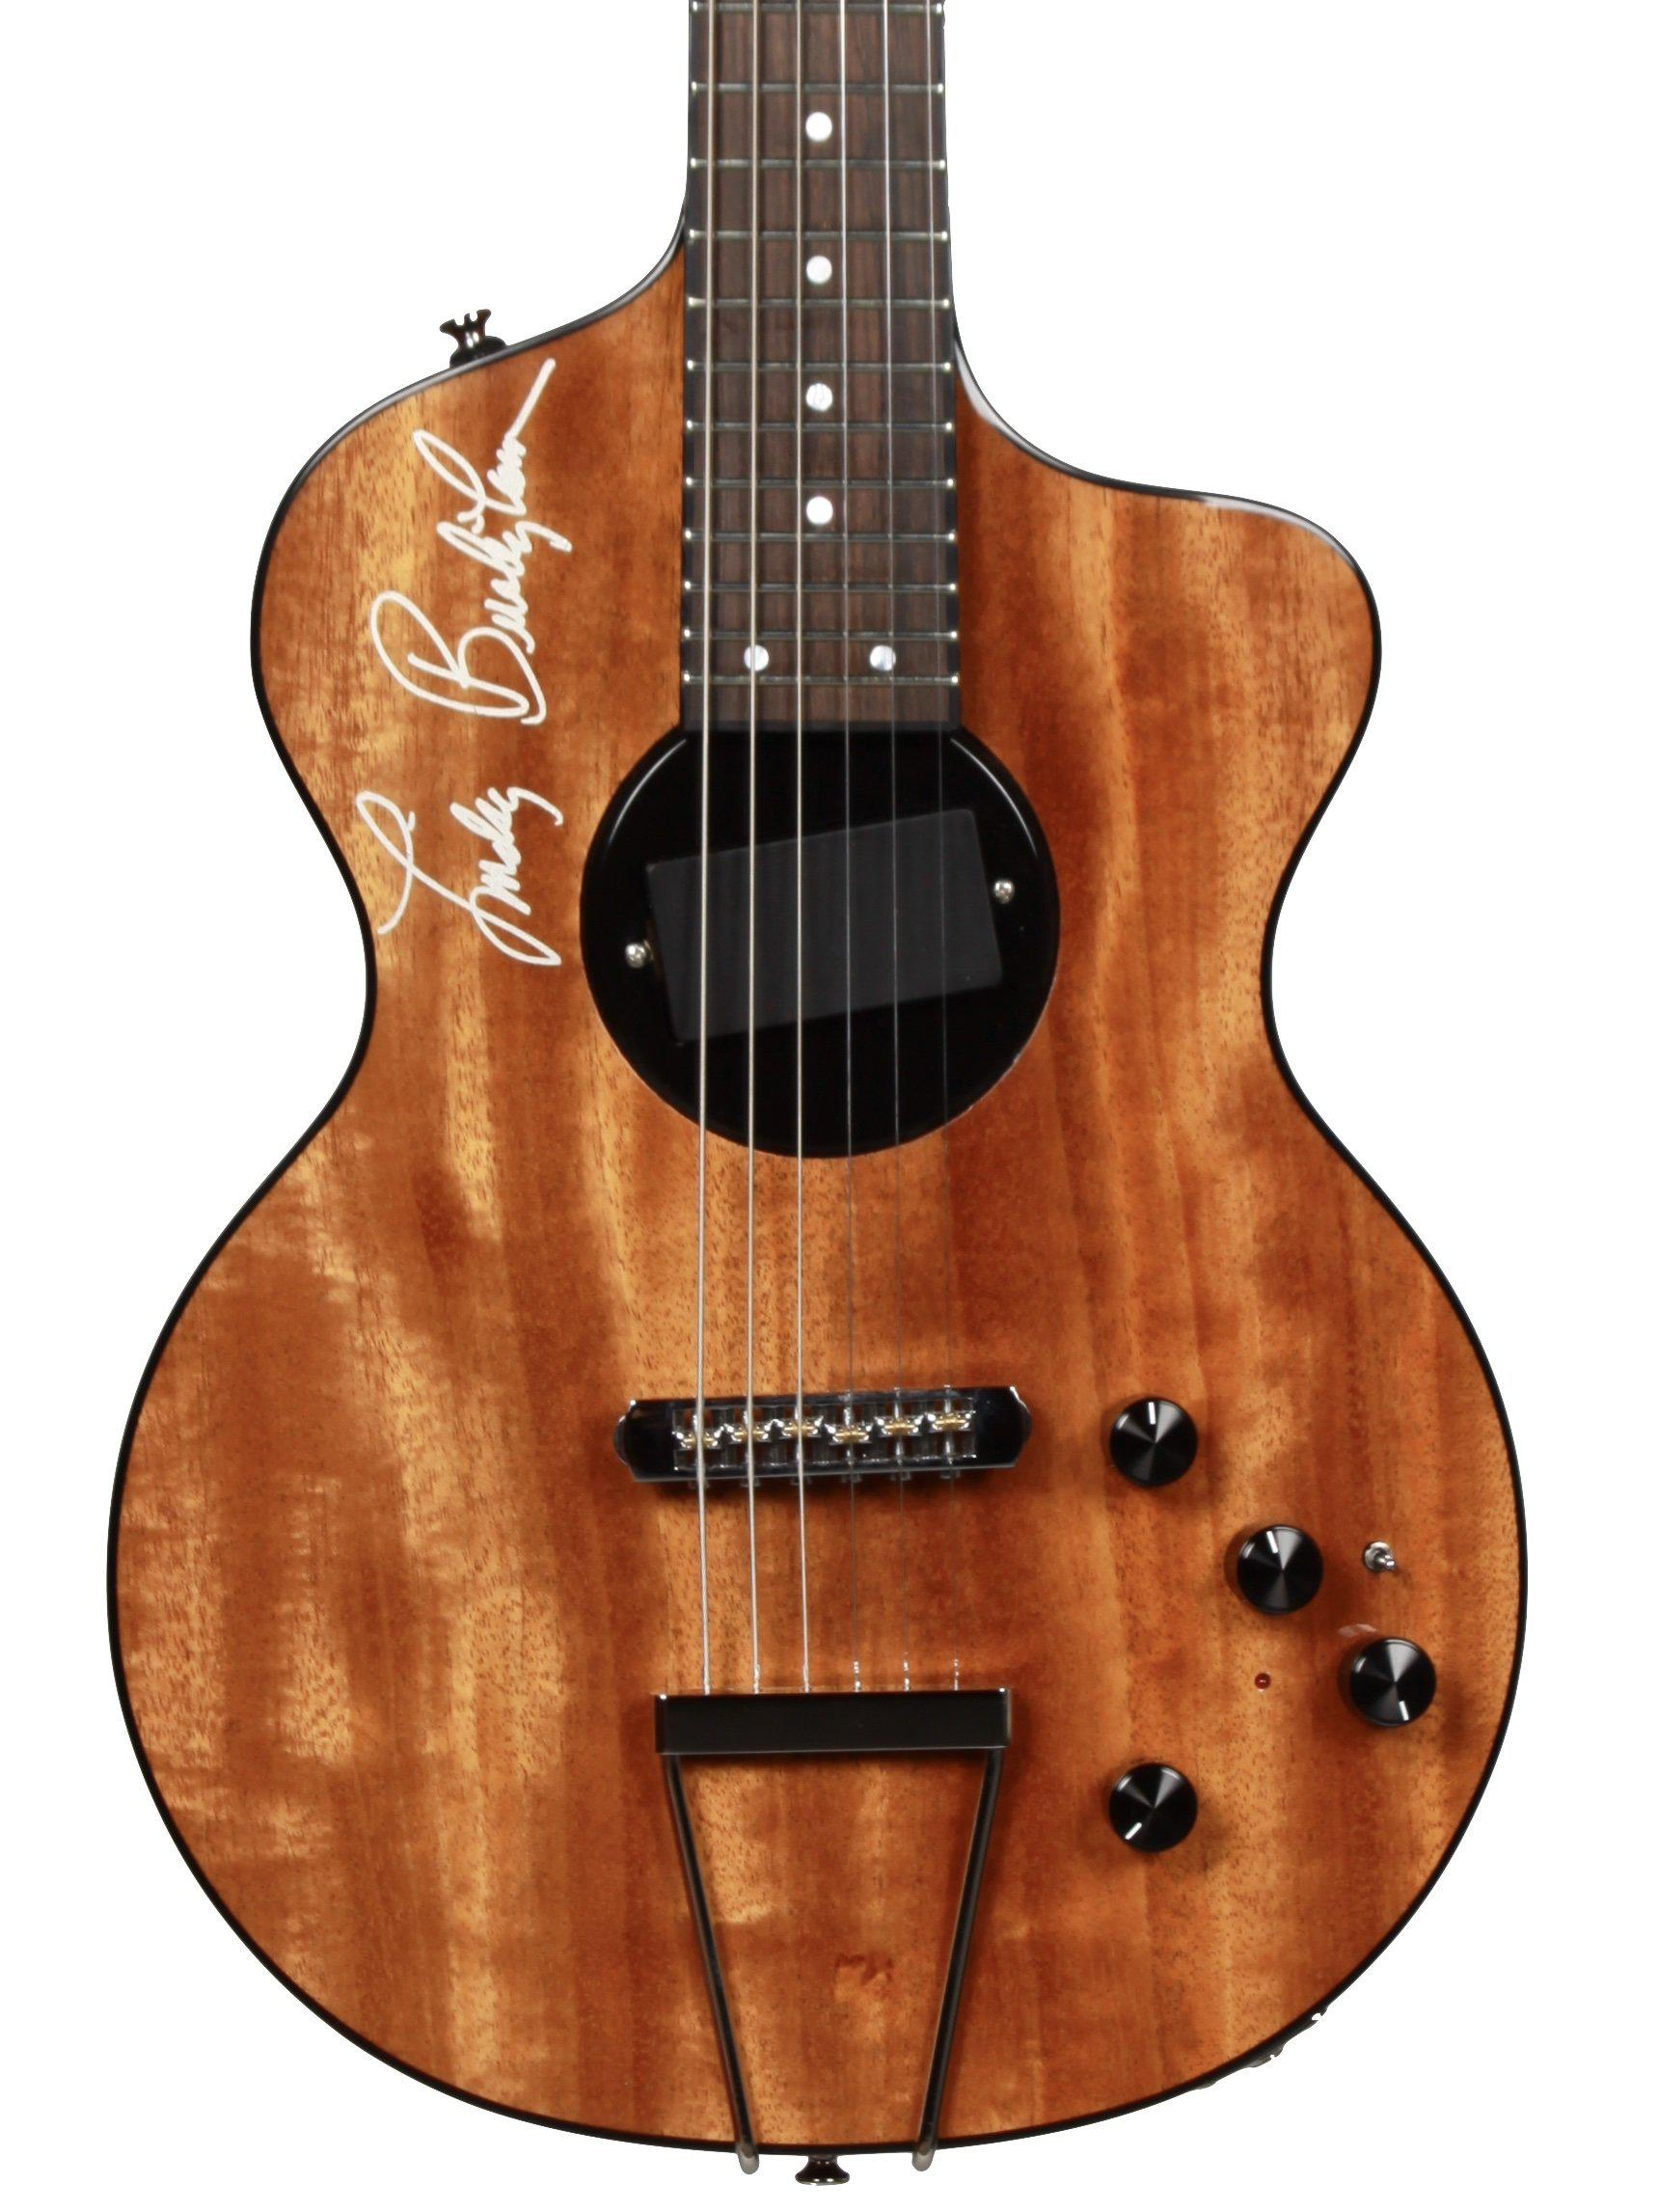 Rick Turner 40th Anniversary Lindsey Buckingham #15/18 - Rick Turner Guitars - Heartbreaker Guitars